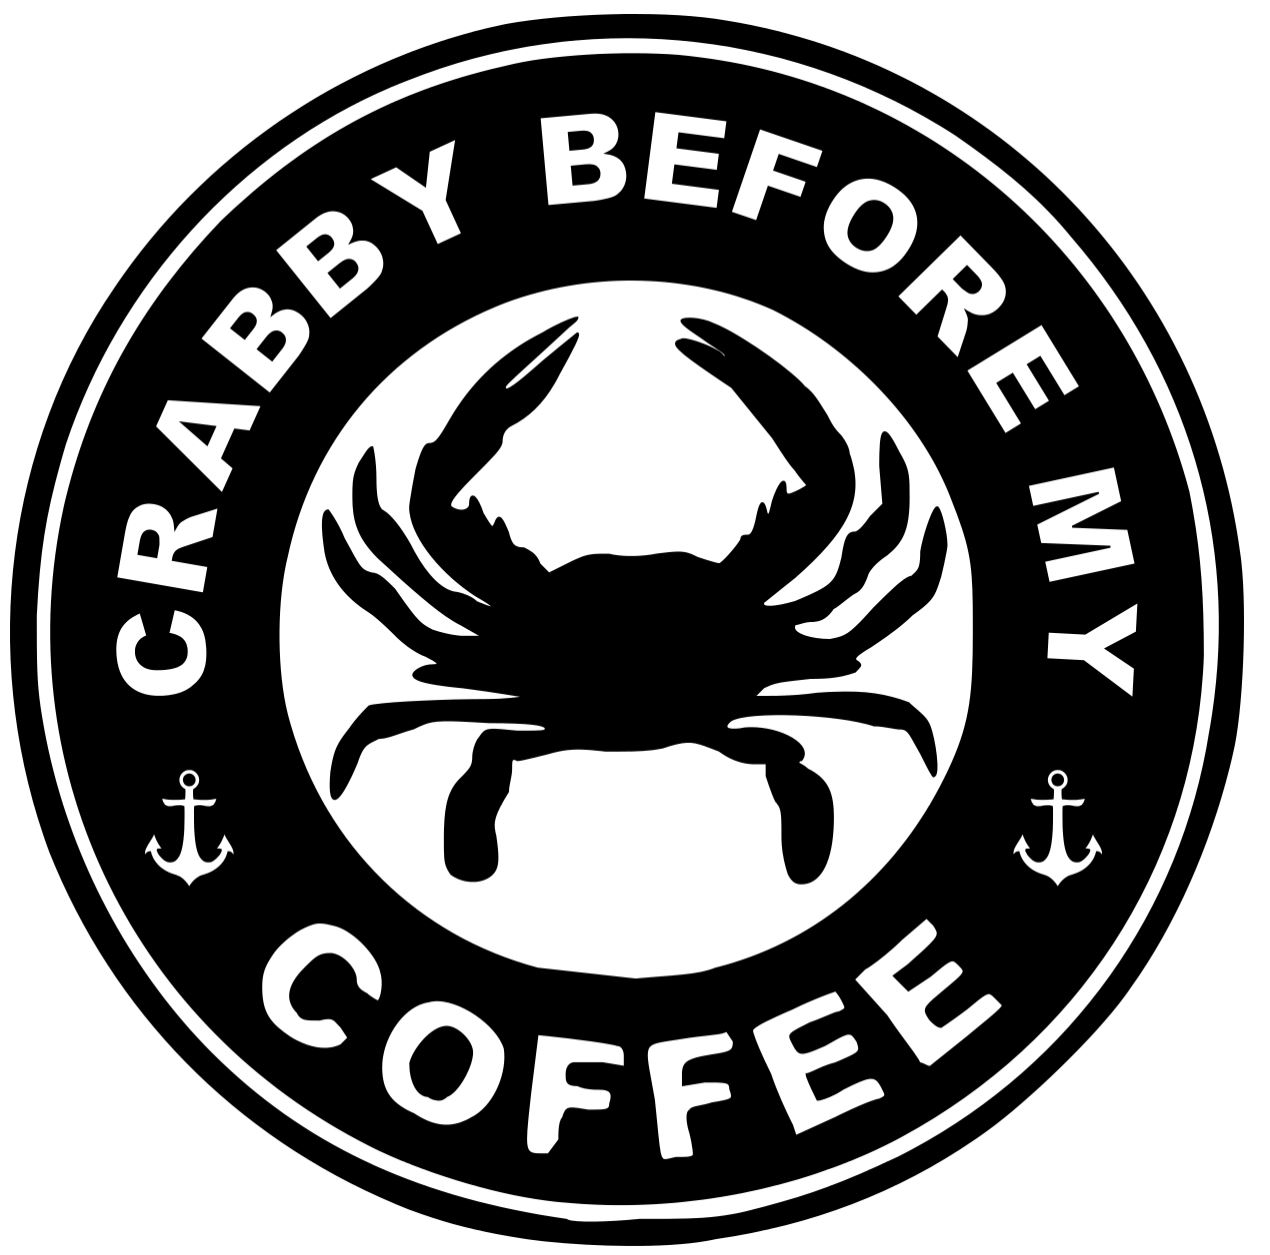 Crabby before my coffee